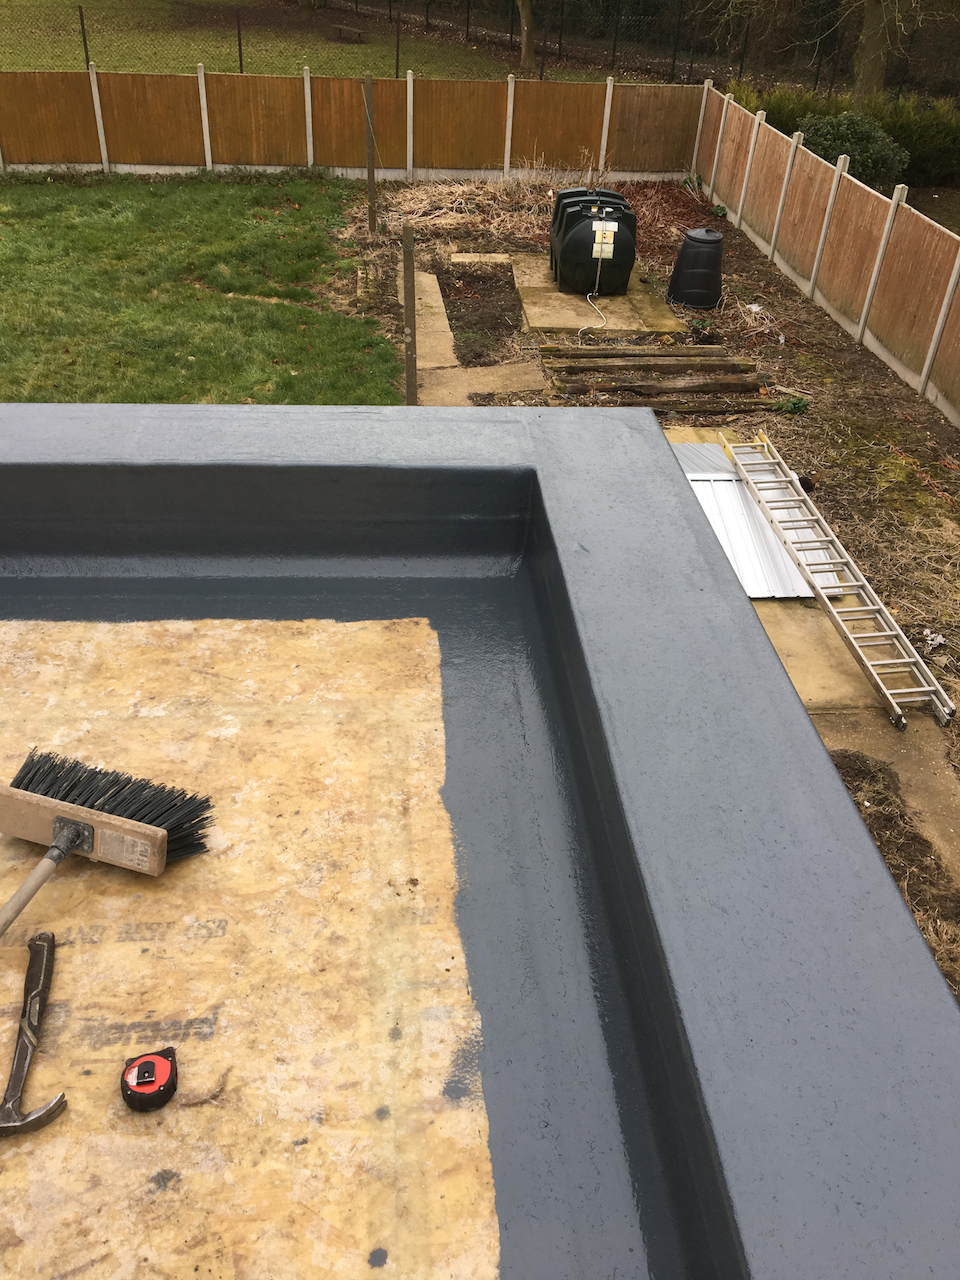 https://www.bluedotroofing.uk/wp-content/uploads/2018/02/grp-flat-roof-marton-lincolnshire-18.png